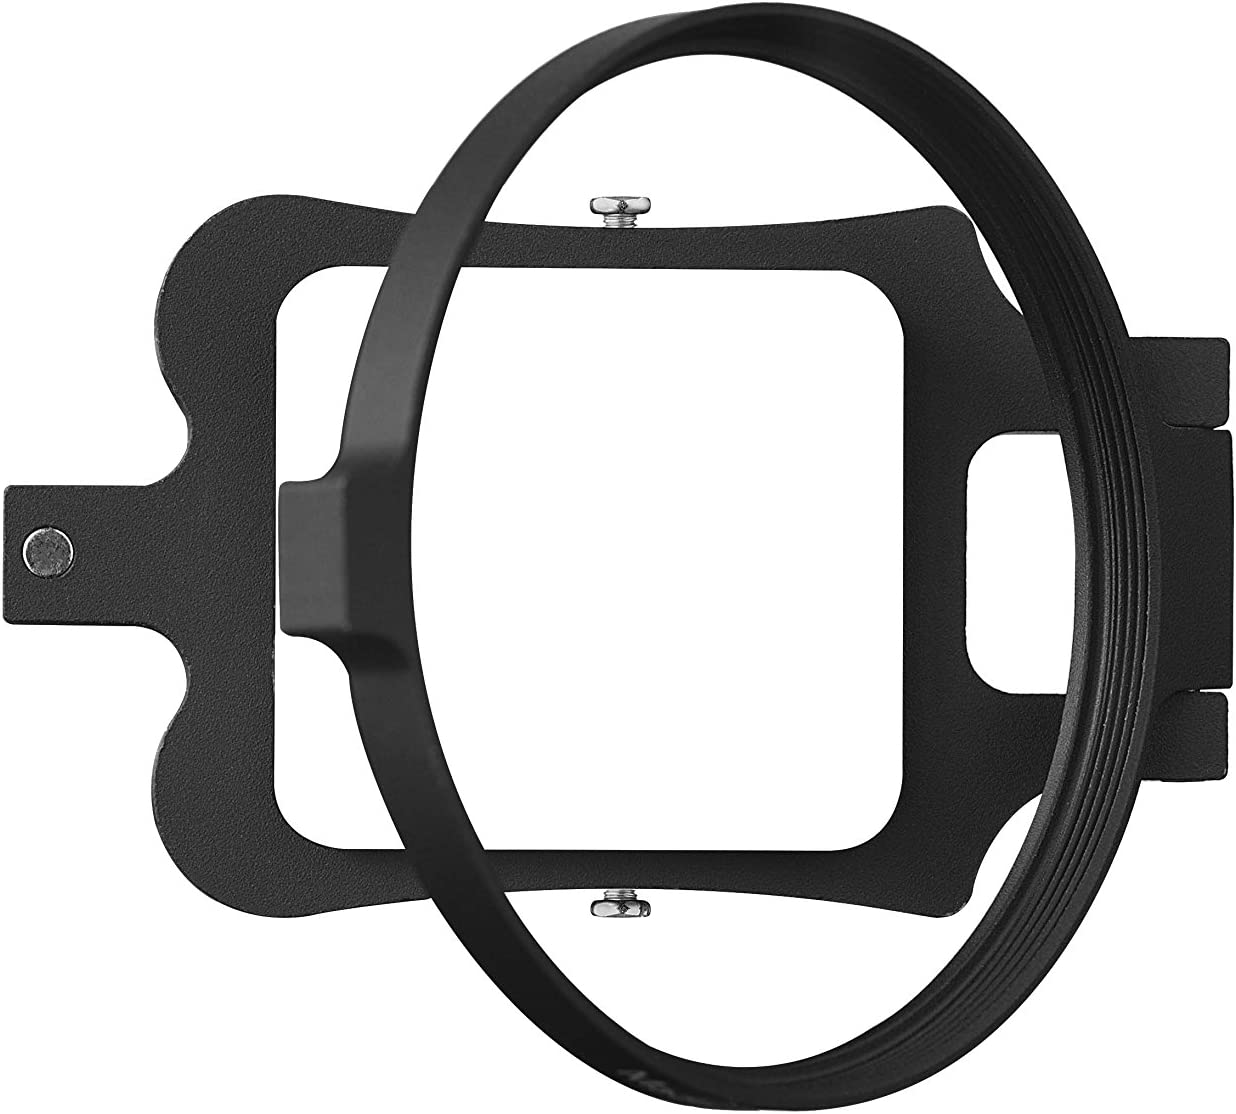 W filter kit for GoPro Hero 5/including filter holders and Grey Filter ND 0.9//& Outdoor Circular Polarising Filter B